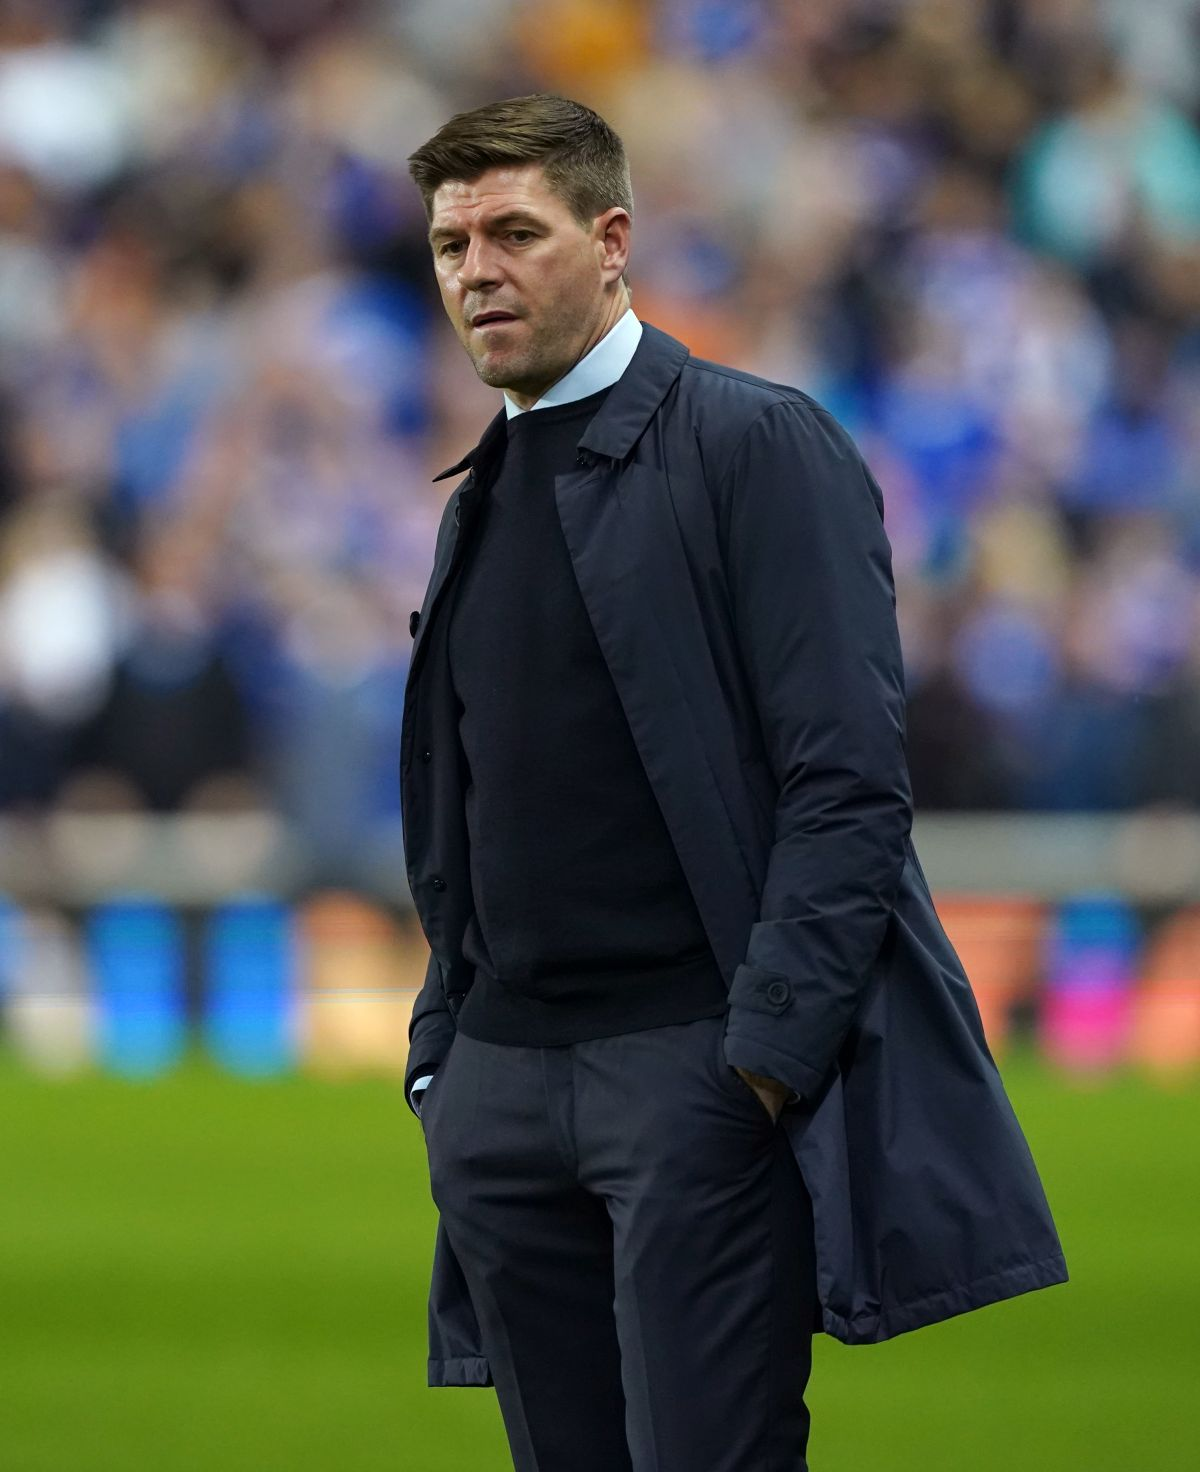 Rangers beaten at home by Lyon in Steven Gerrard's 50th European tie as manager